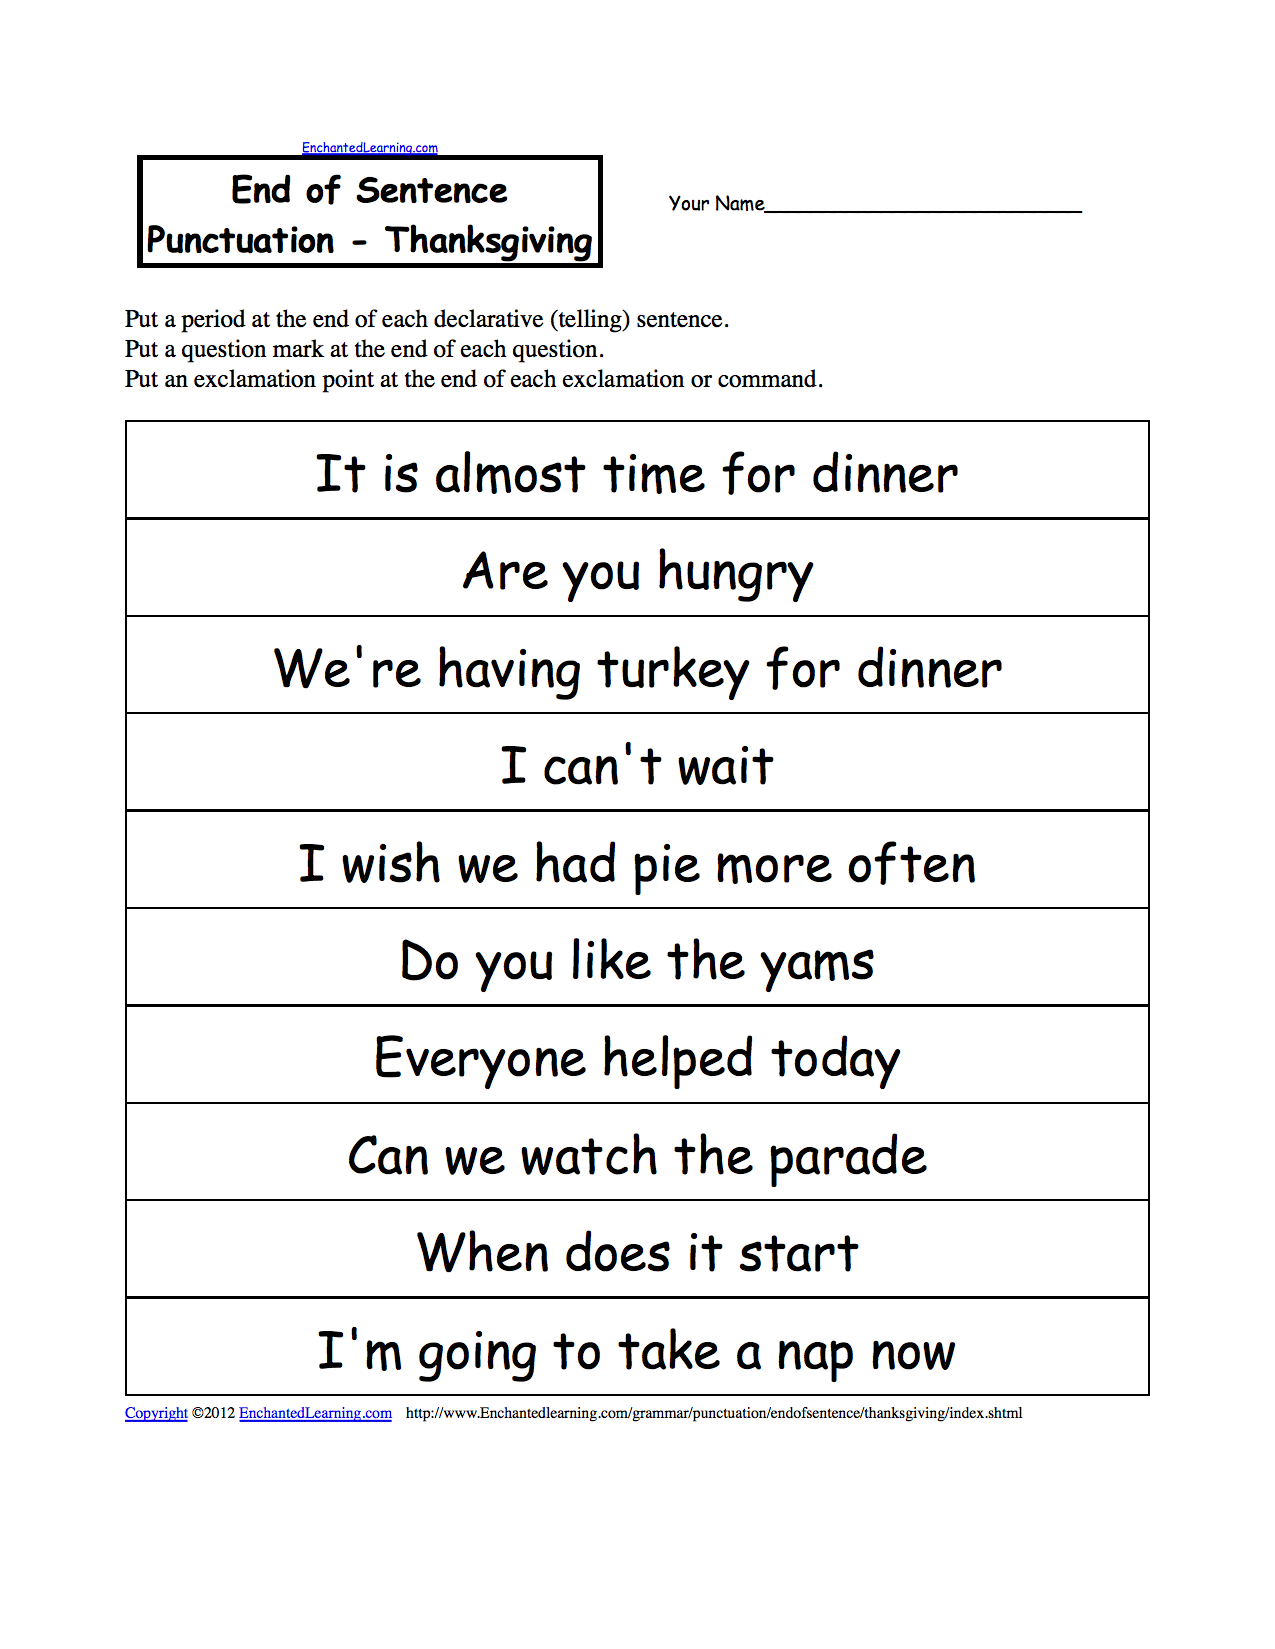 Printables Punctuation Worksheet end of sentence punctuation printable worksheets punctuate